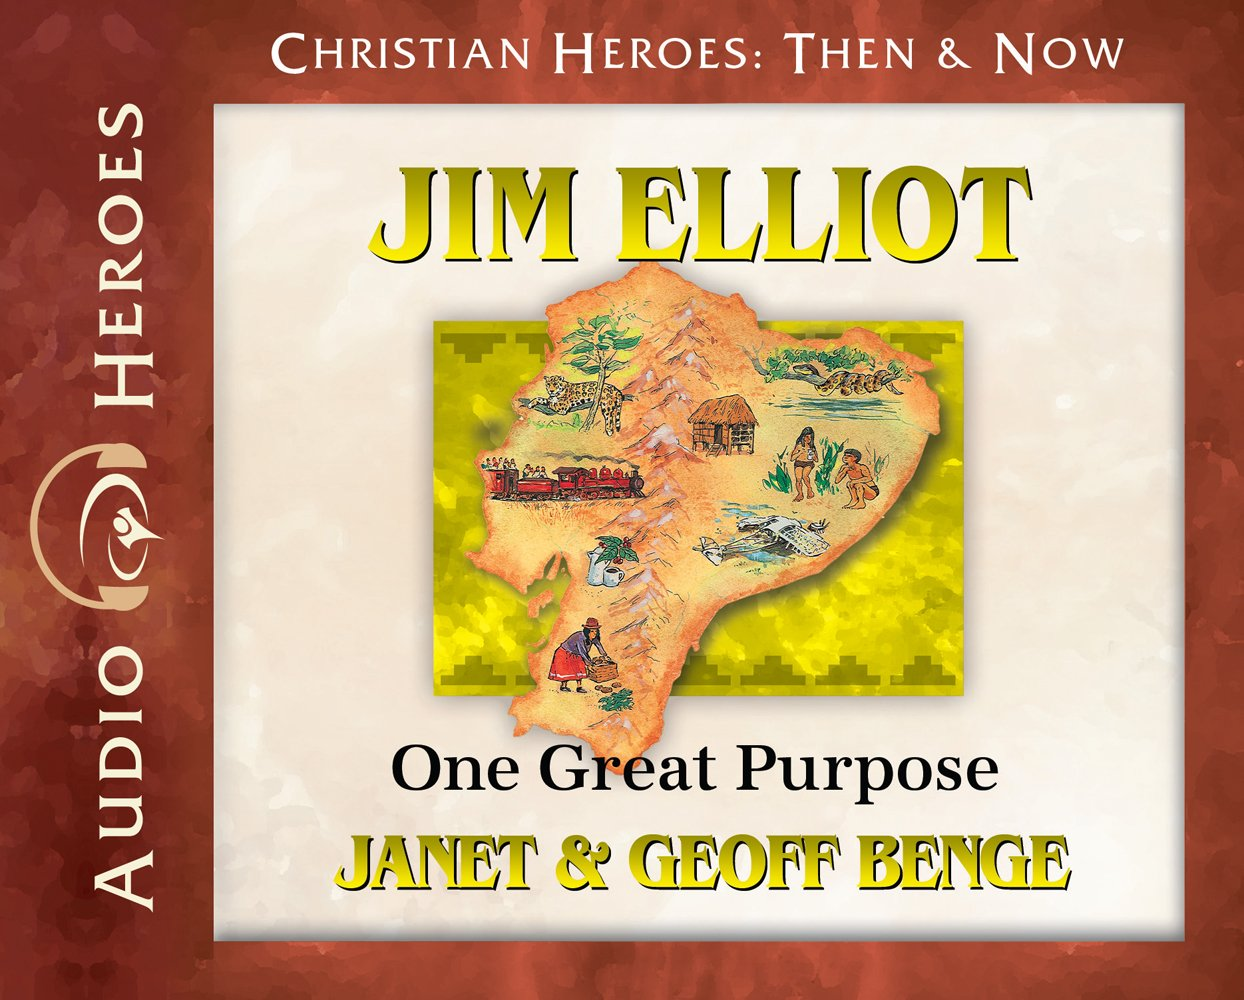 Jim Elliot Audiobook: One Great Purpose (Christian Heroes: Then & Now)